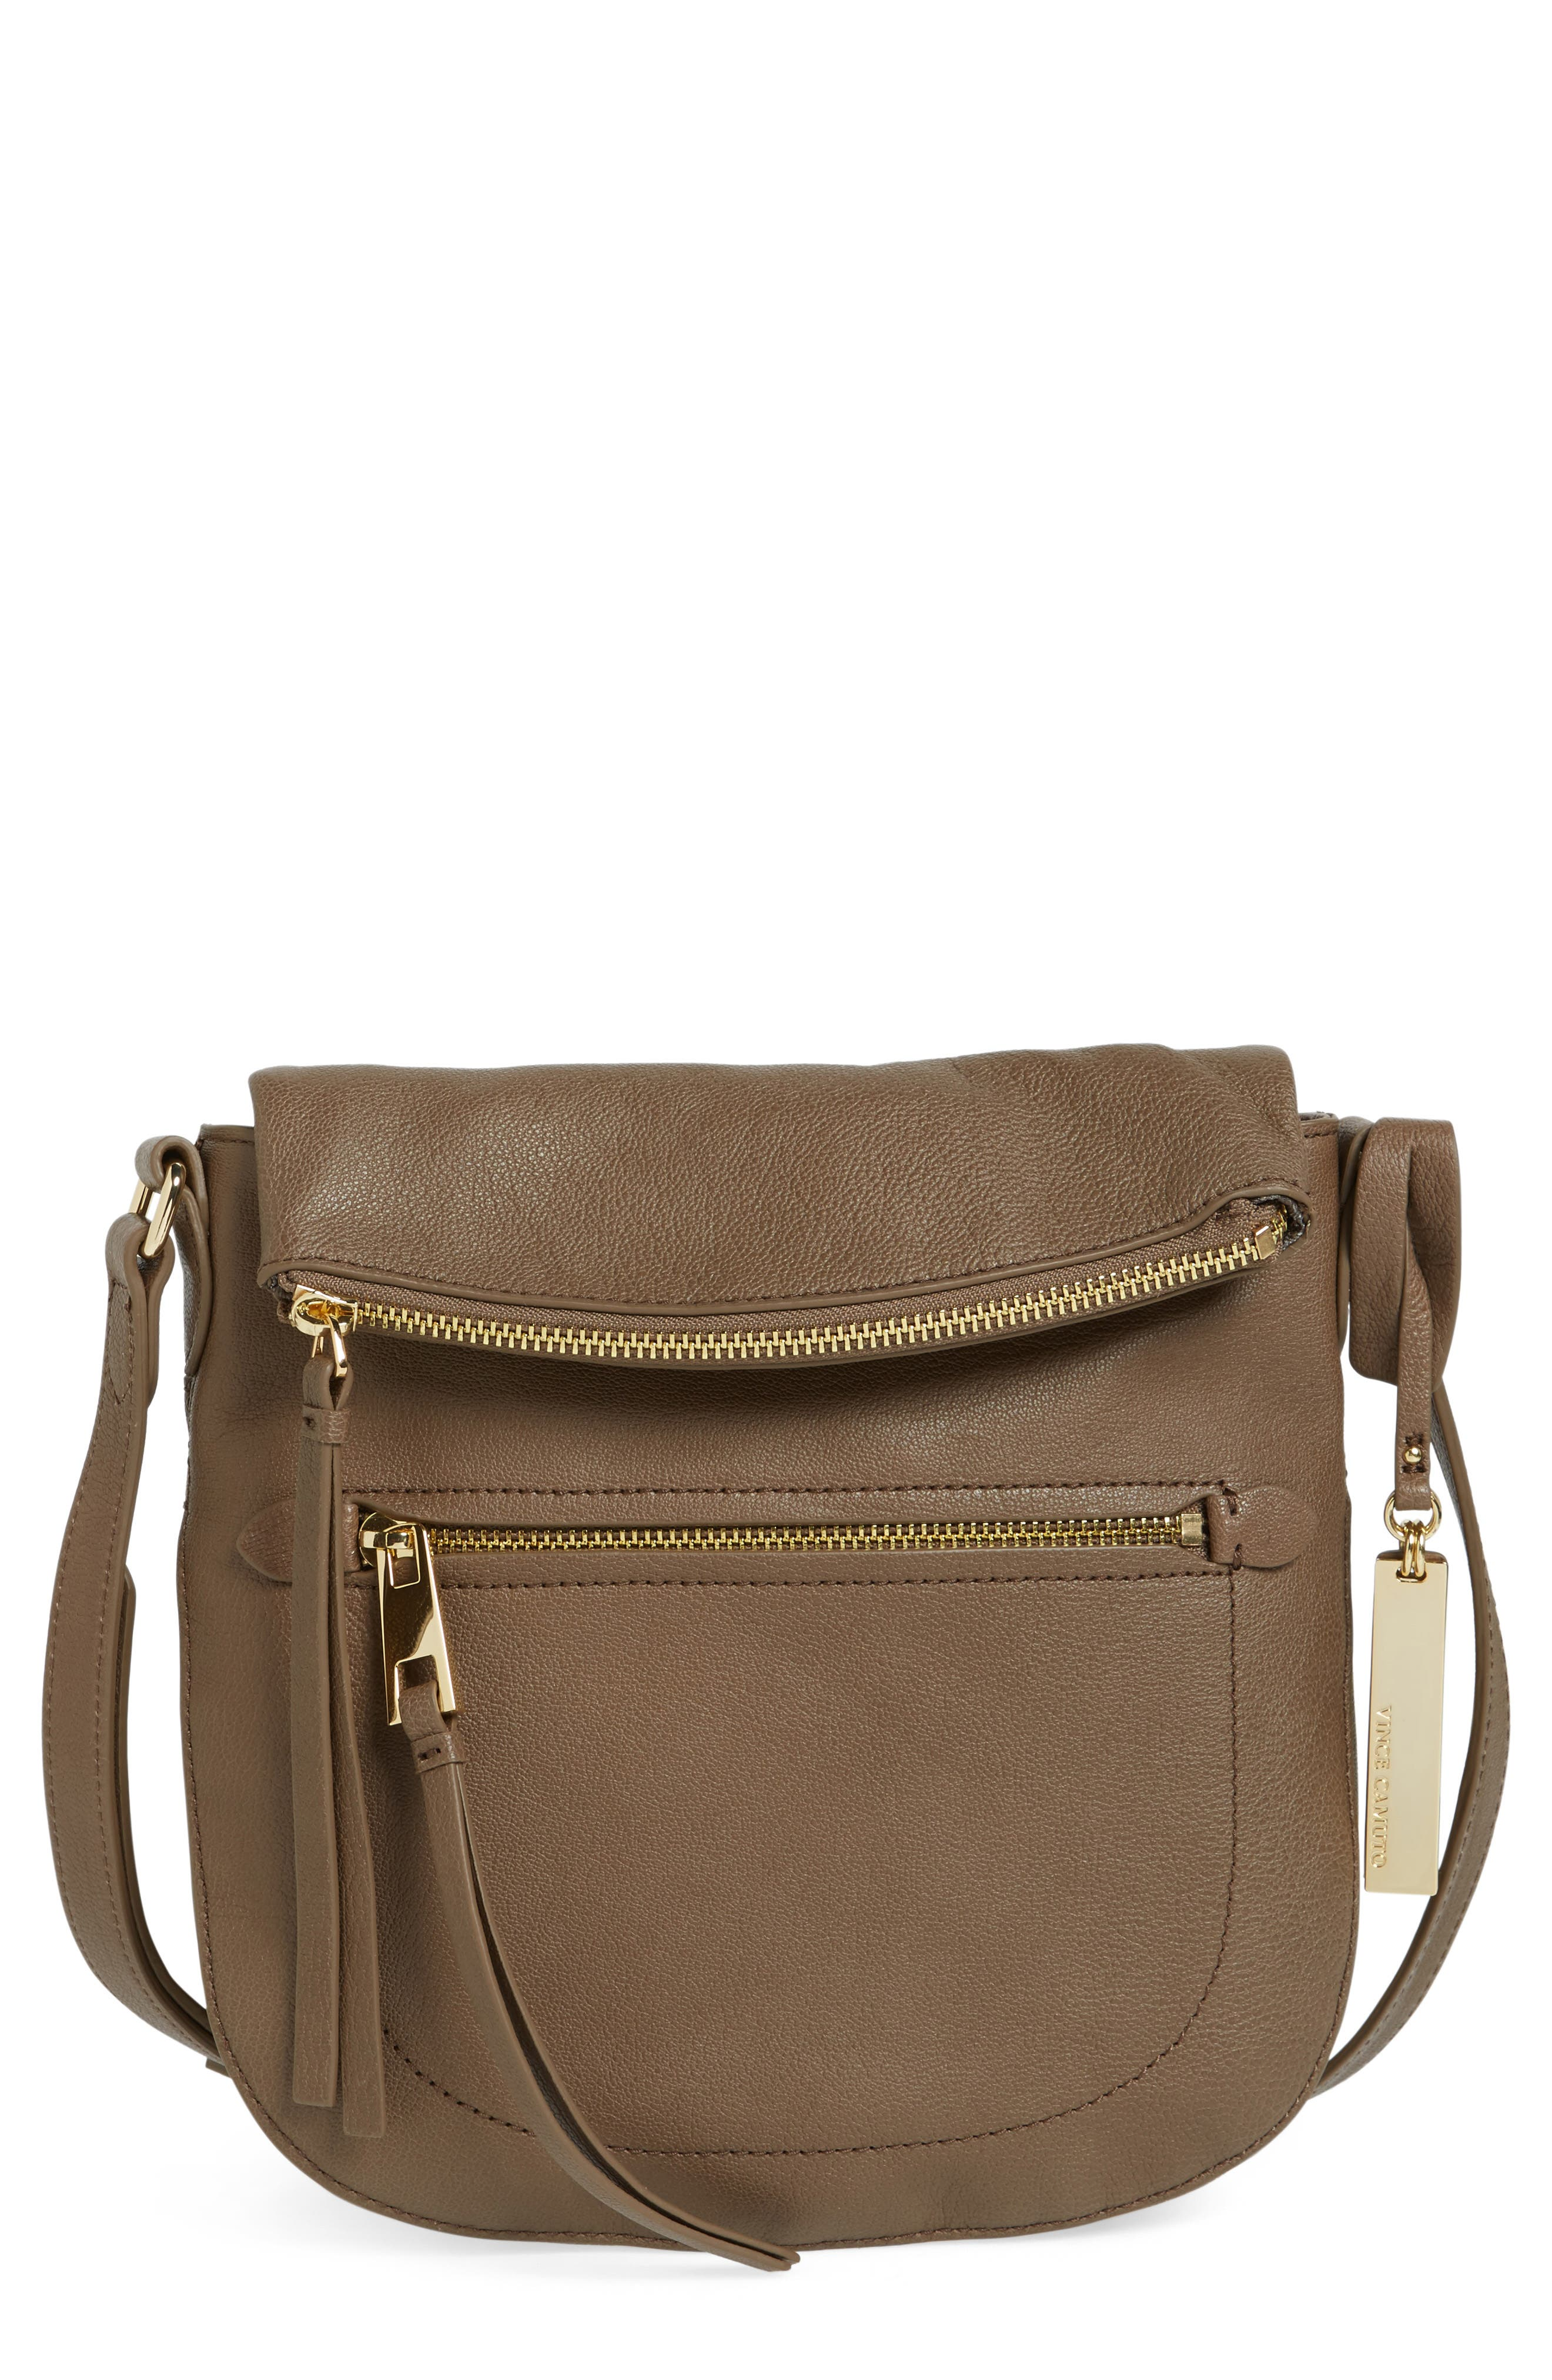 Alternate Image 1 Selected - Vince Camuto 'Tala' Leather Crossbody Bag (Nordstrom Exclusive)